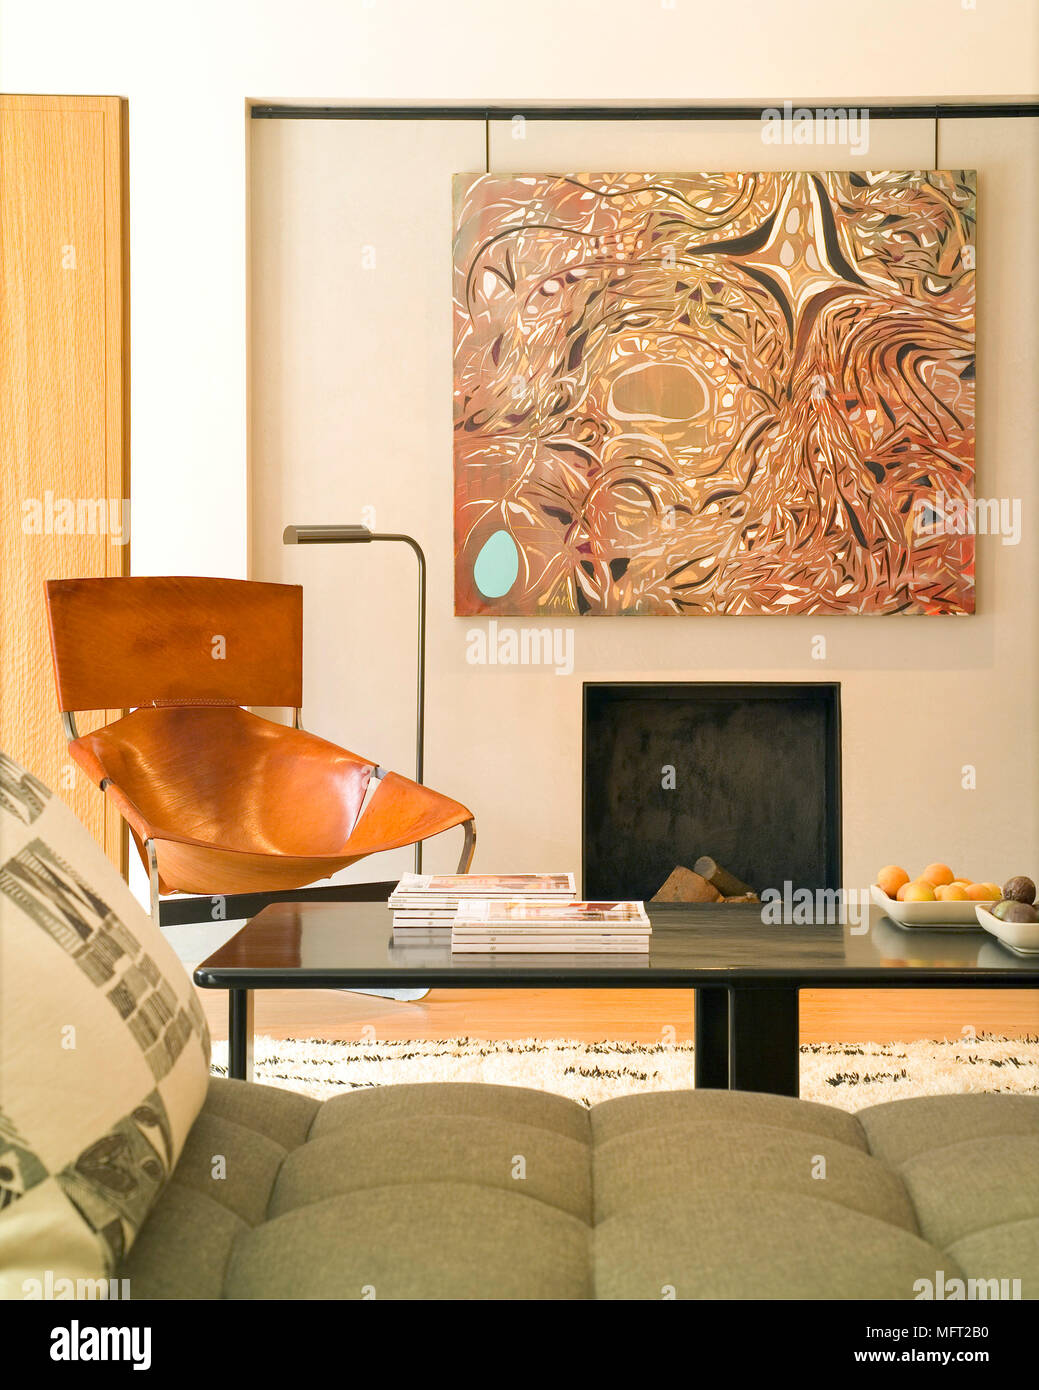 details of a modern sitting room with an abstract painting above an rh alamy com Plywood Bench Plywood Bench